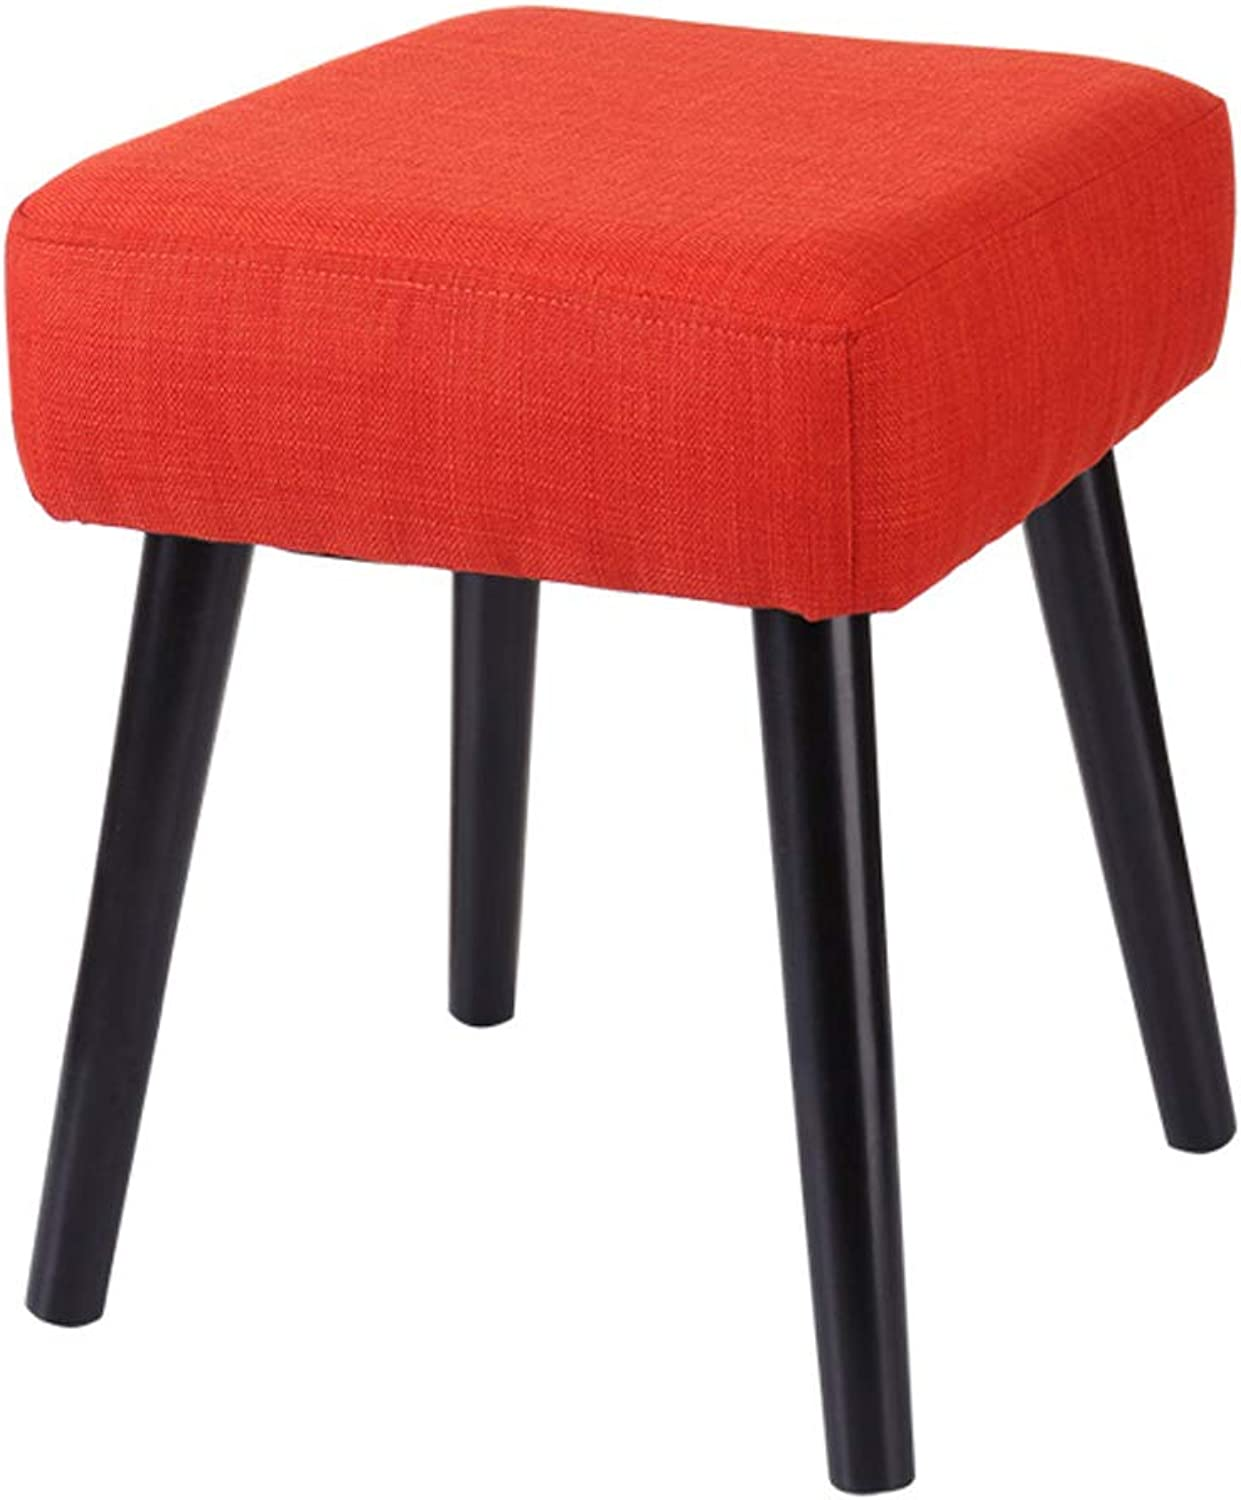 Square Stool Home Footstool, Fashion Fabric Sofa Bench, Simple Solid Wood shoes Bench, Suitable for Living Room, Bedroom (Red)